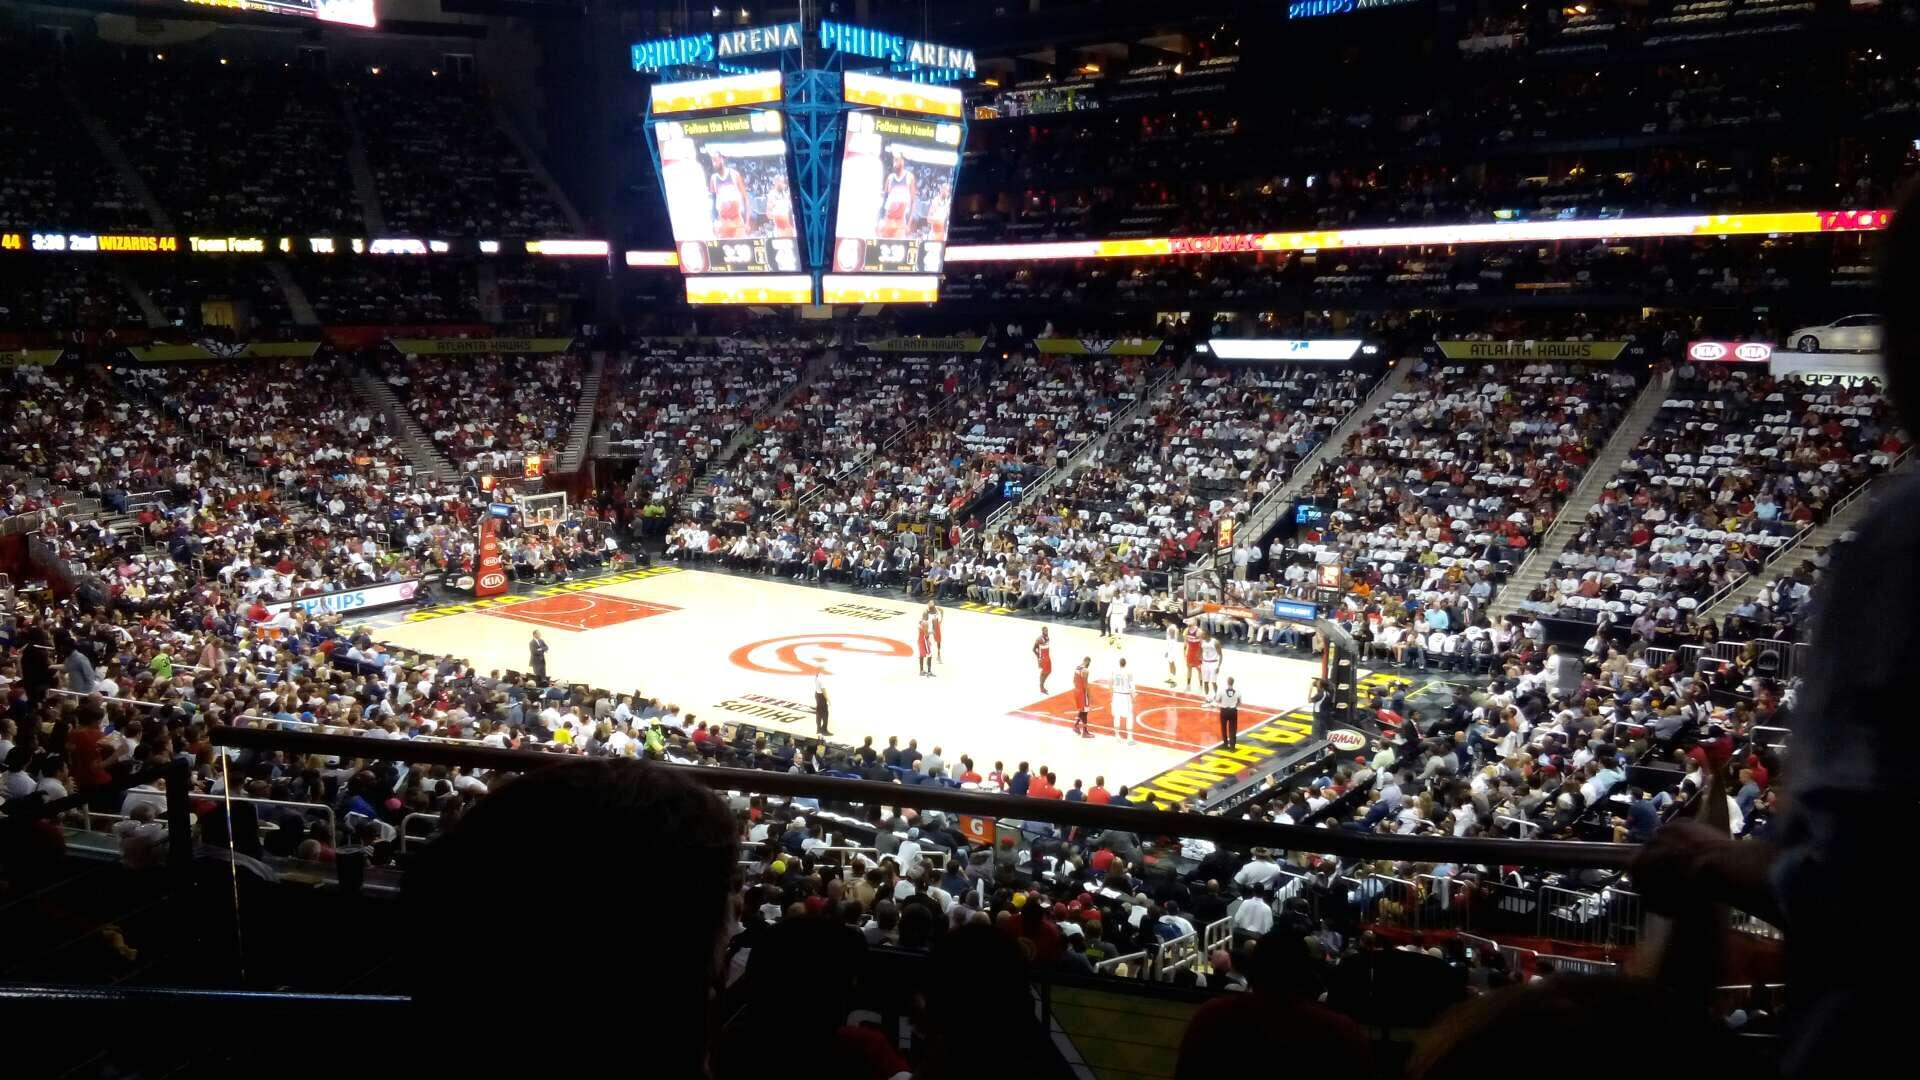 Philips Arena Section 209 Row C Seat 1